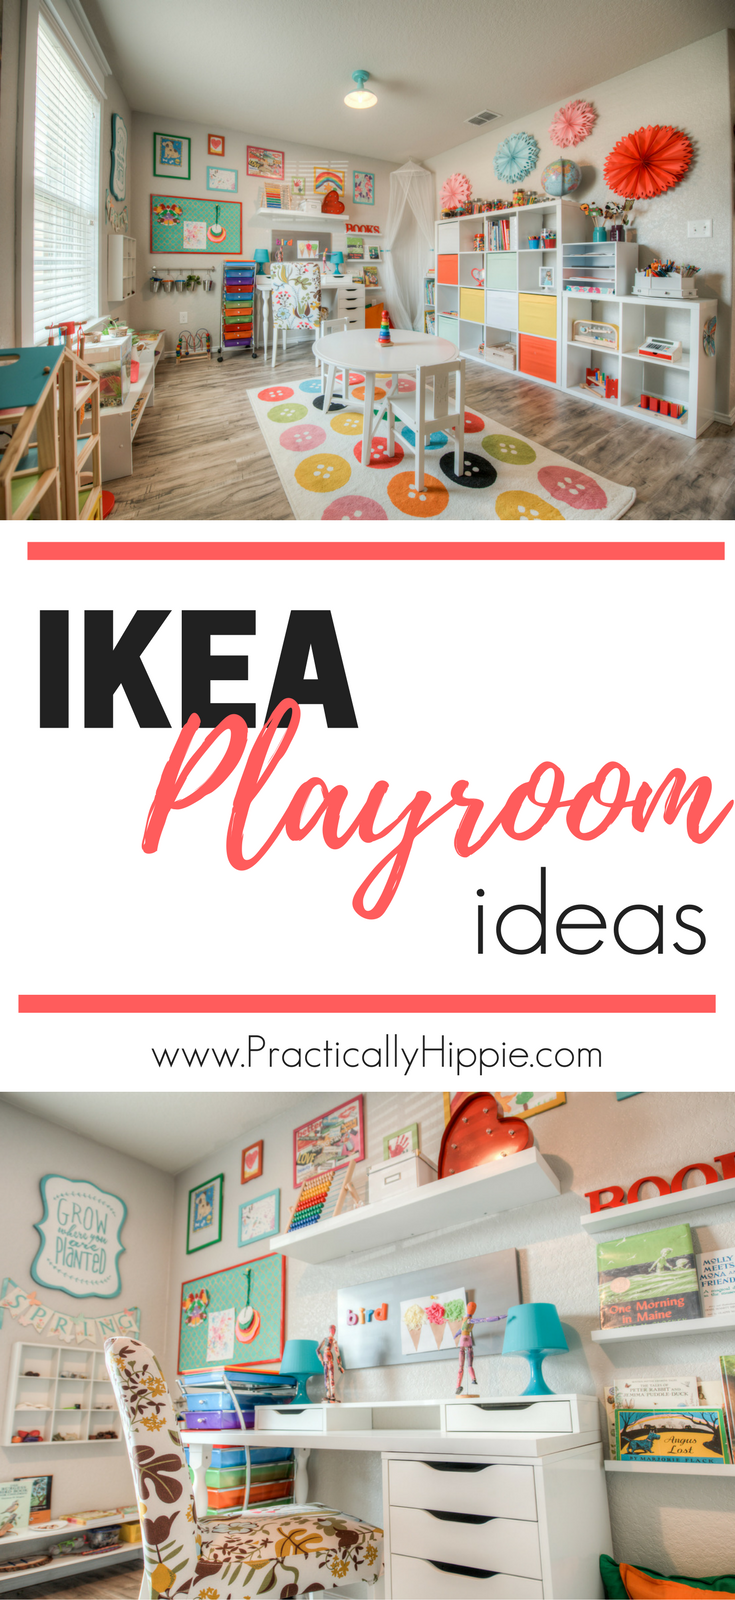 Our Bright Cheerful Ikea Playroom Rooted Childhood Ikea Playroom Playroom Design Playroom Organization